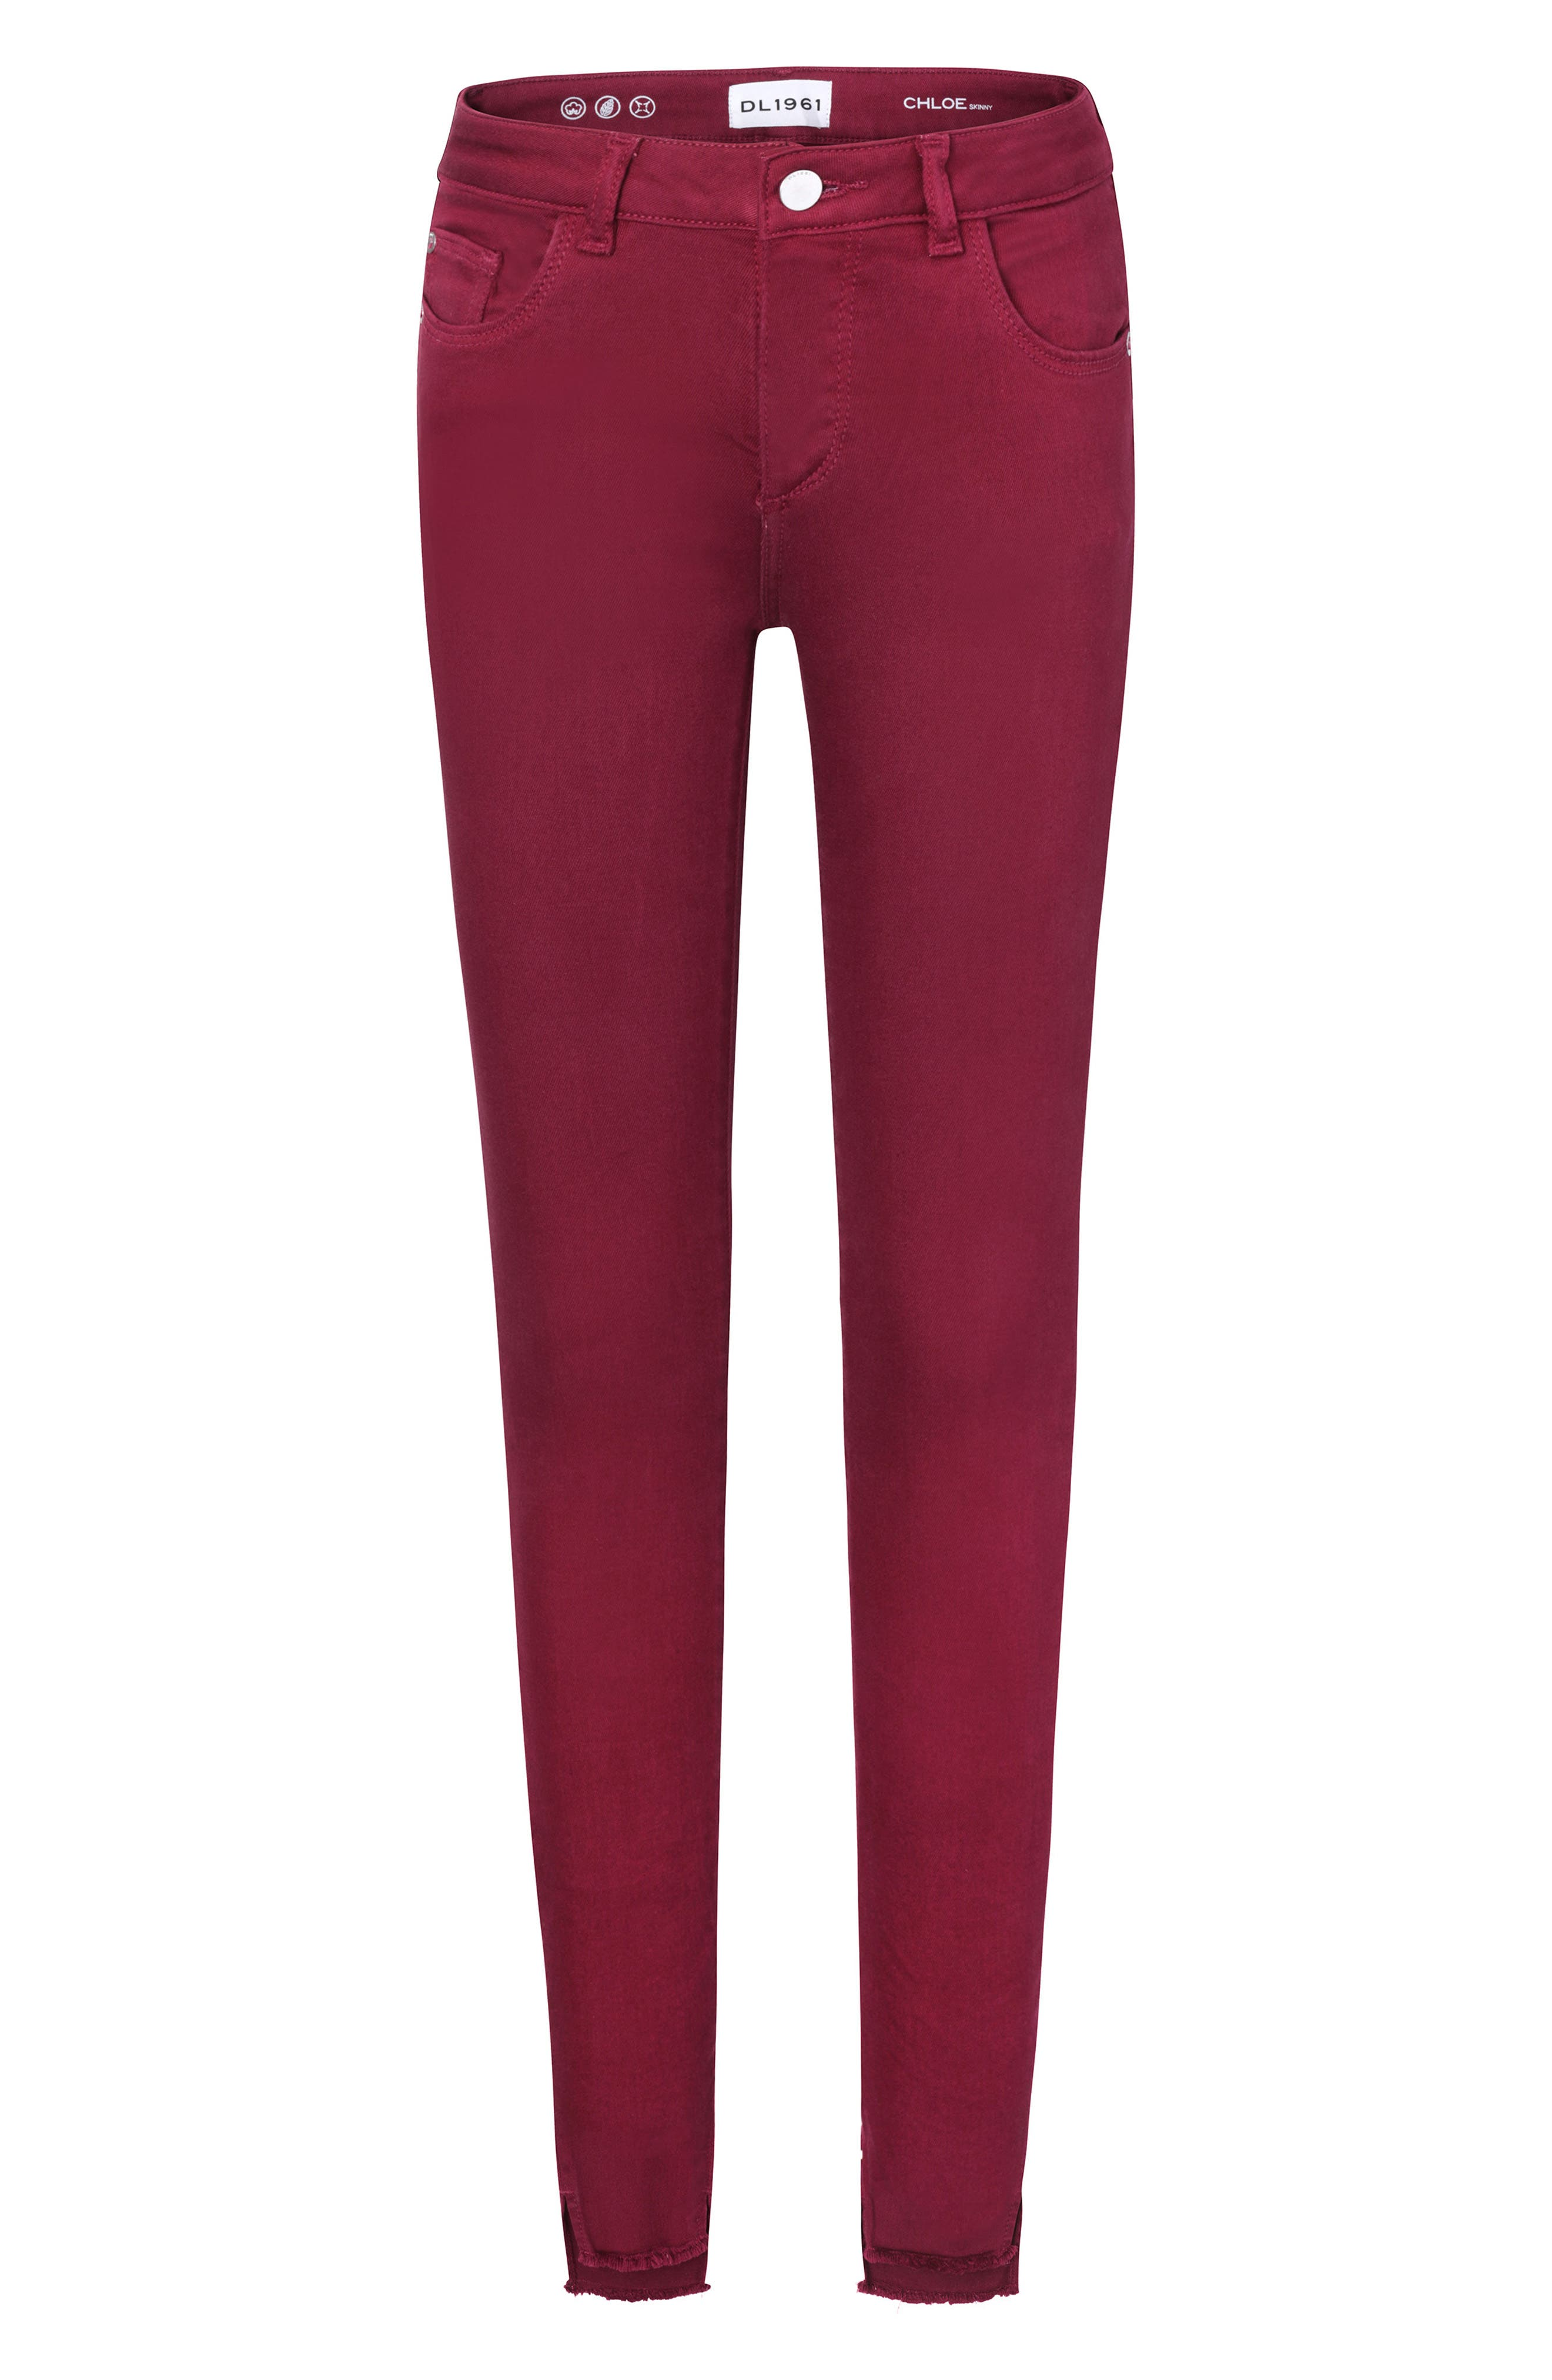 Chloe Skinny Jeans,                         Main,                         color, VERY BERRY